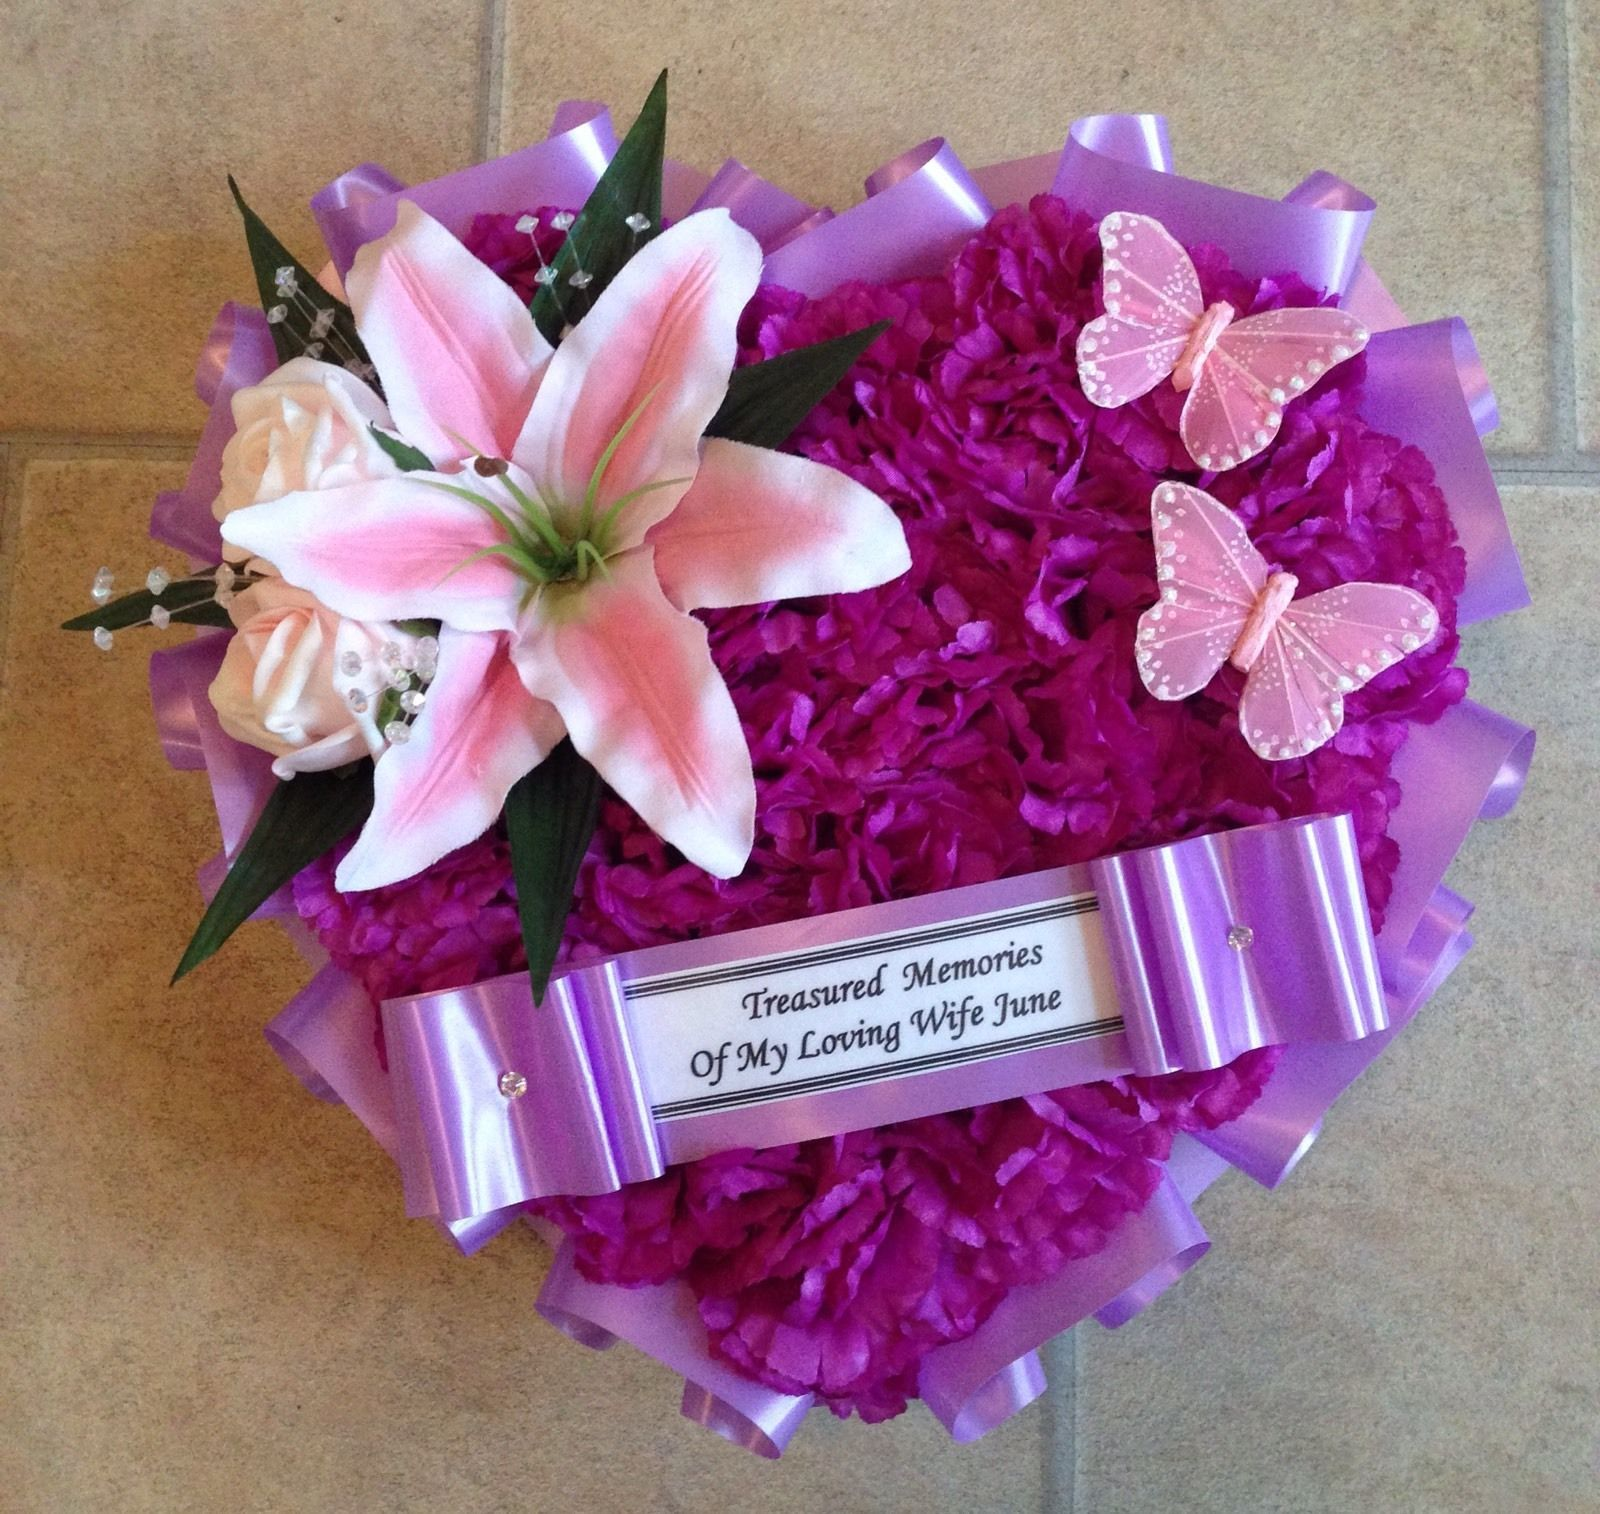 Silk Funeral Flowers Heart Wreath Memorial Tribute Pink Lilac Purple